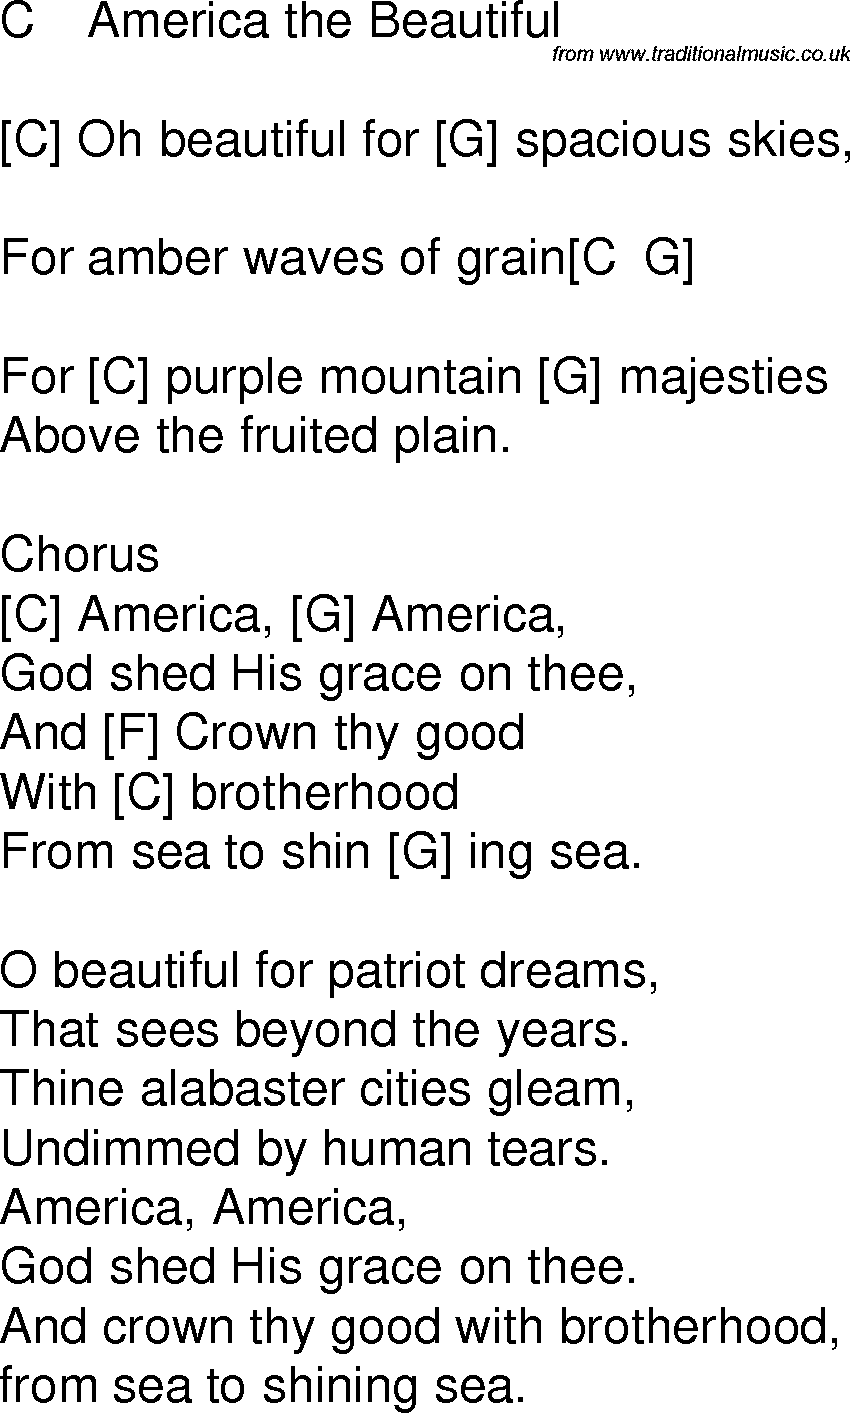 Old Time Song Lyrics With Chords For America The Beautiful C